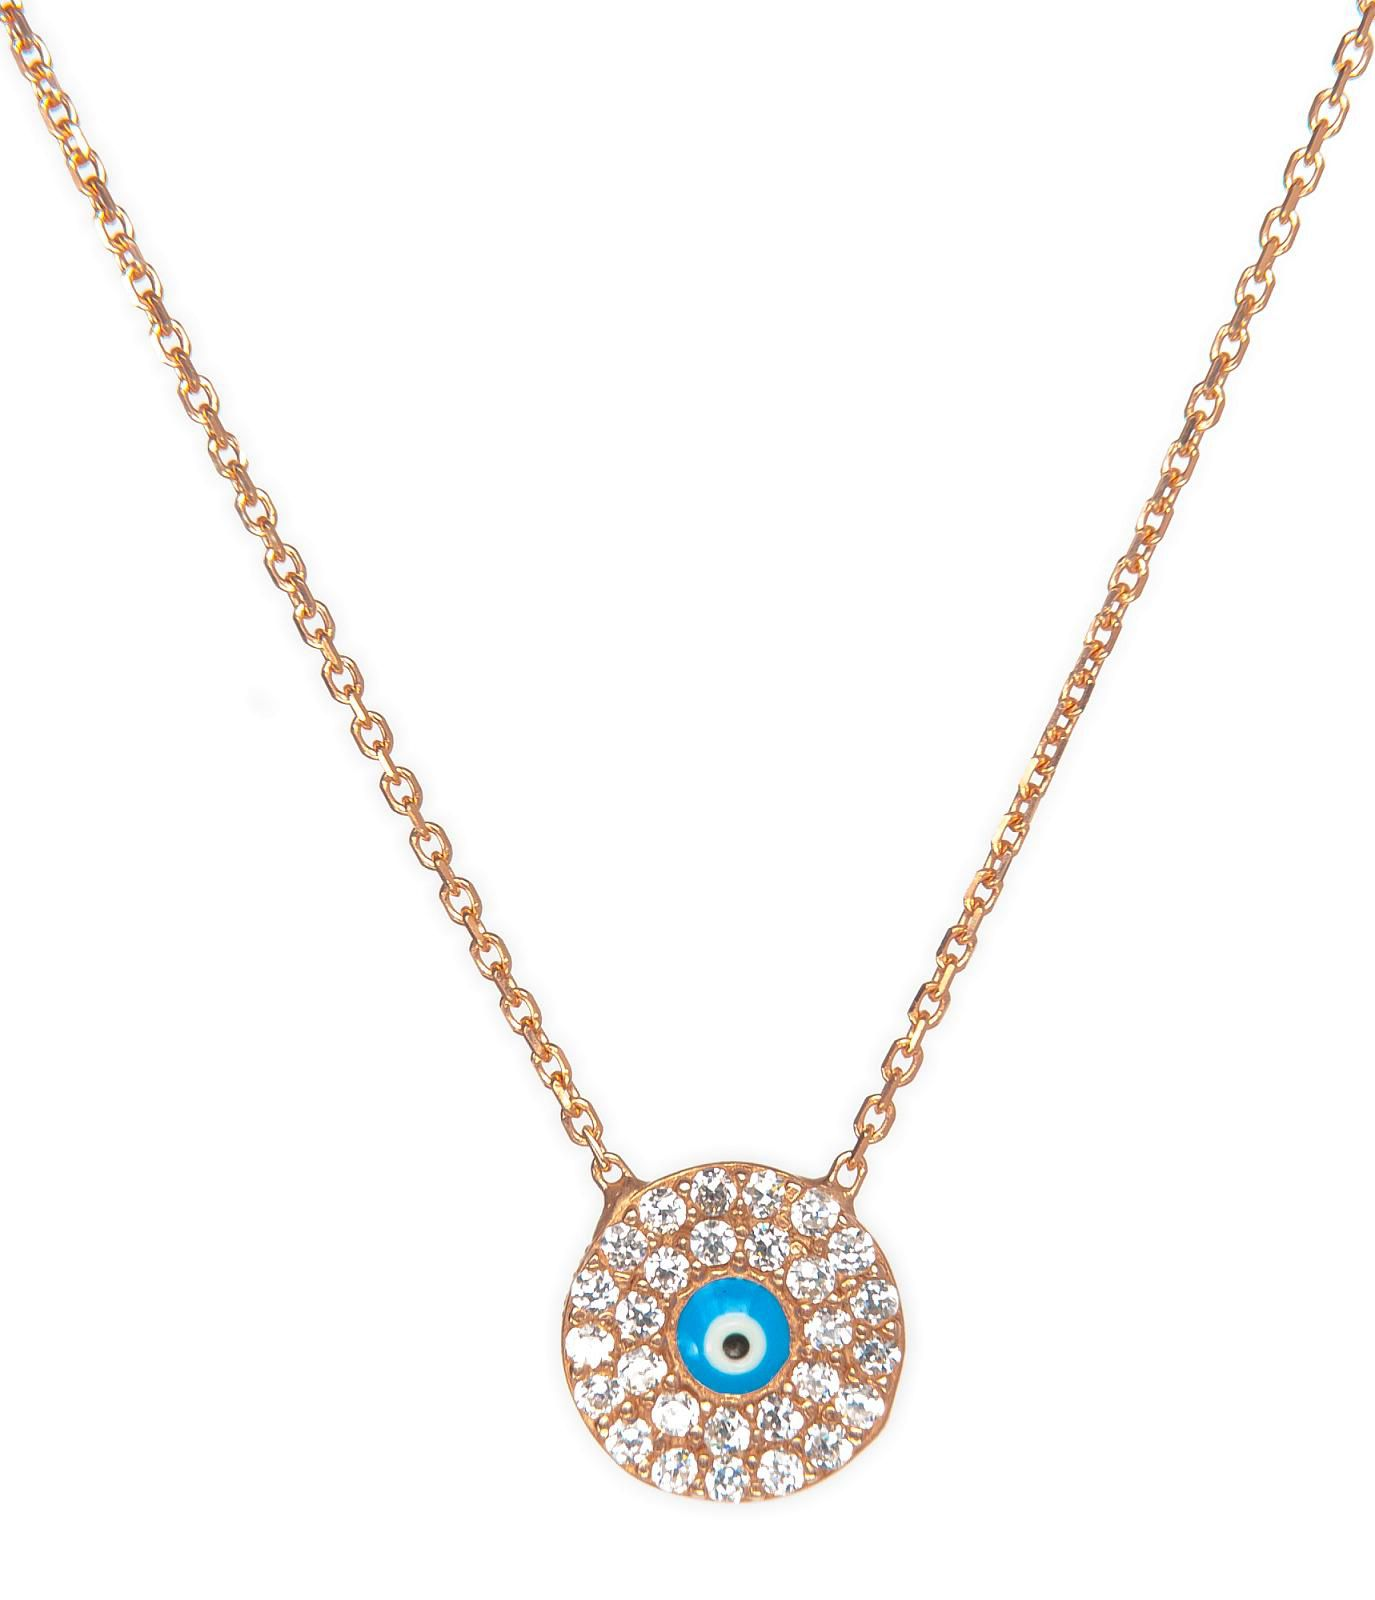 Round pave evil eye necklace